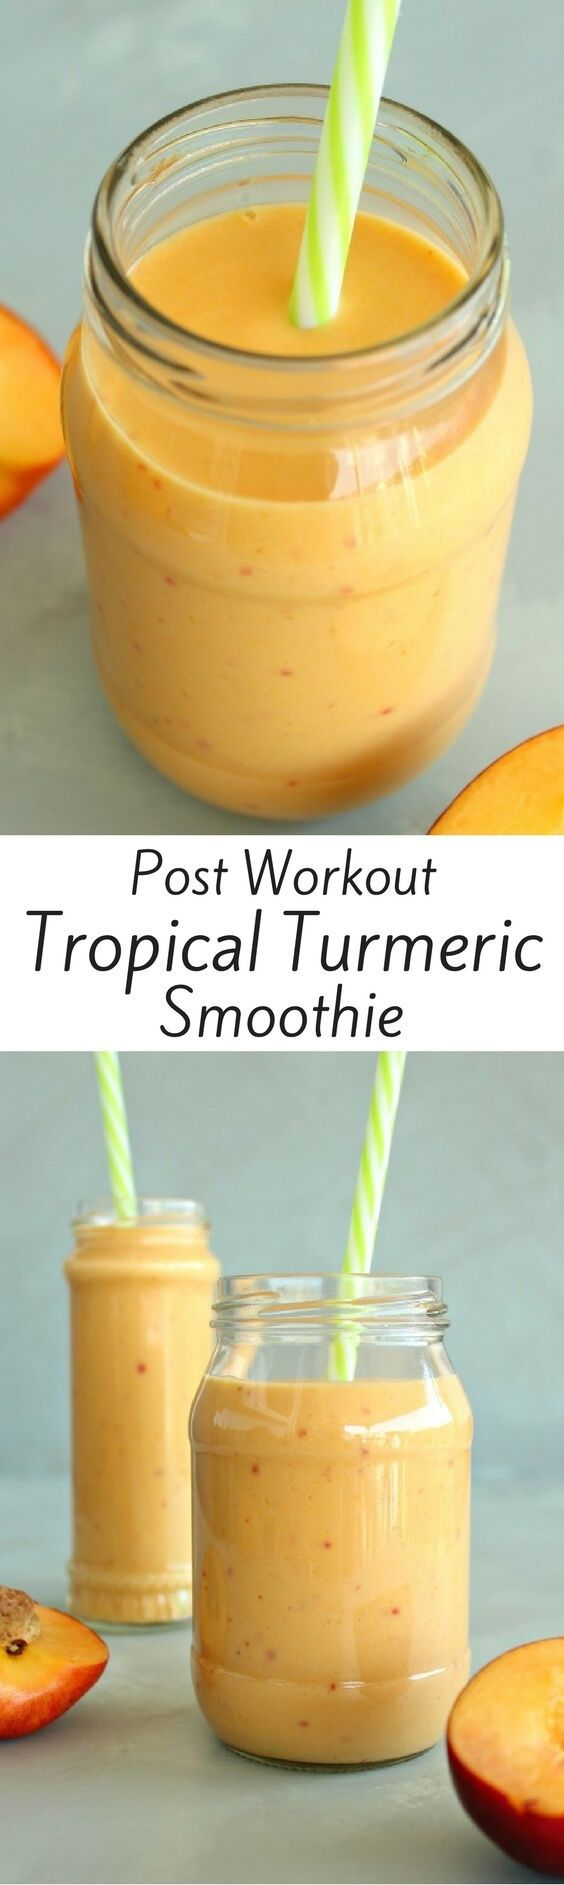 Cool down after workout, while enjoying the benefits of tumeric.....